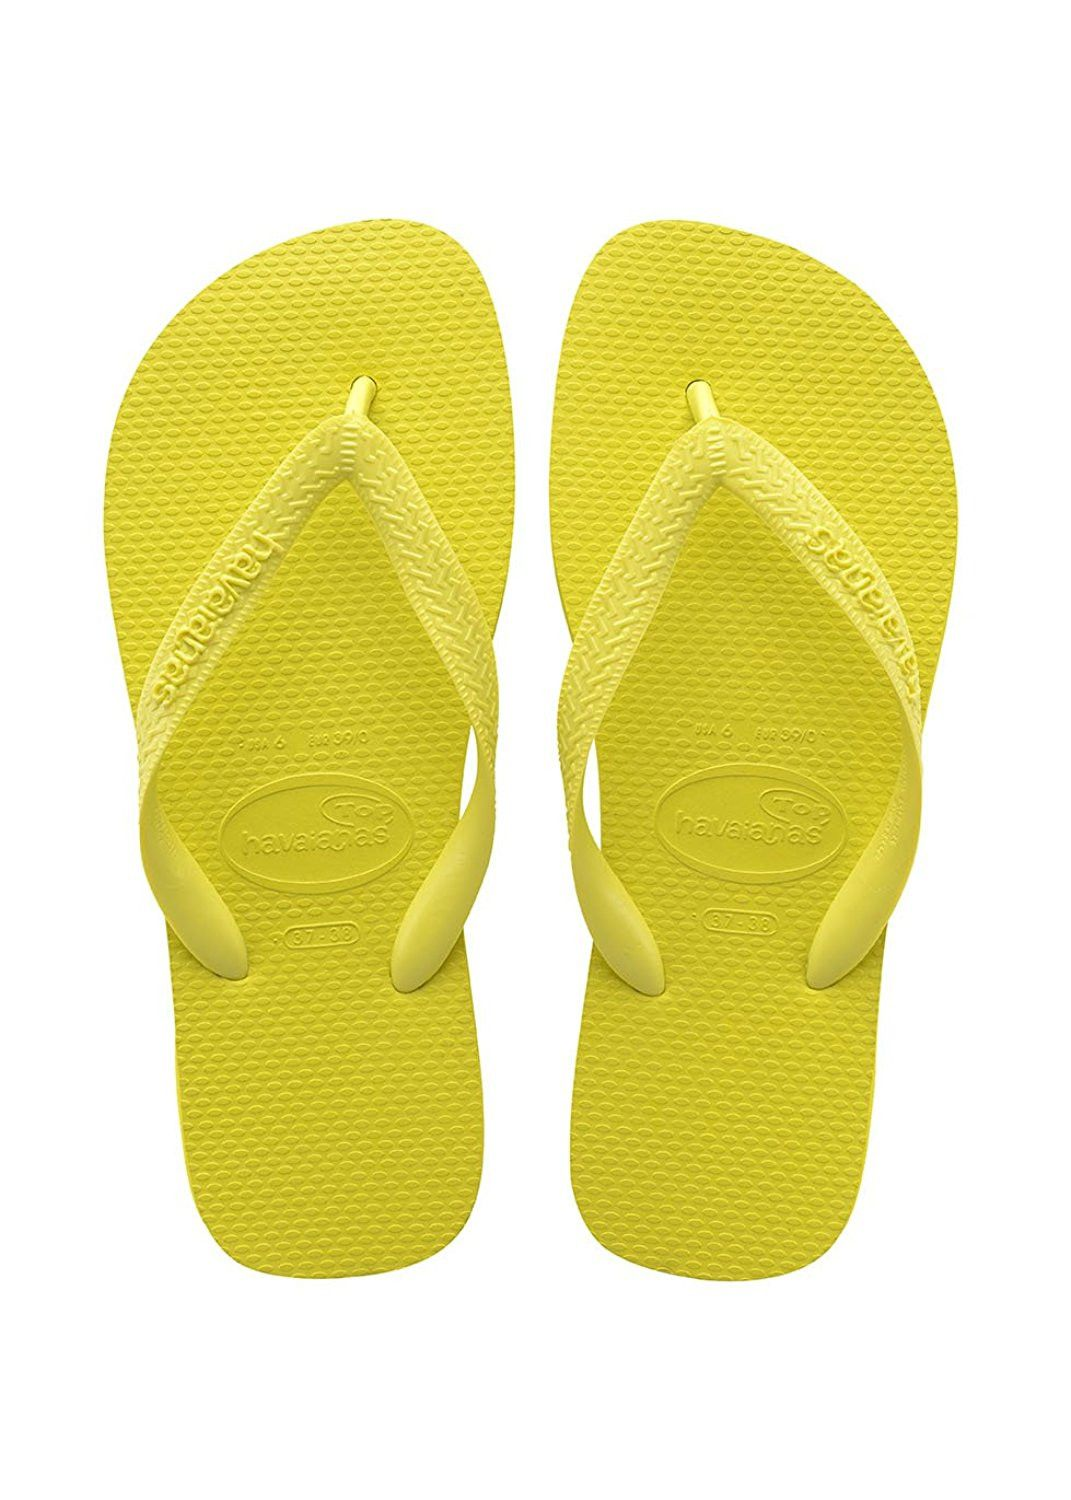 7ec37c3e1 Havaianas Top Citrus Yellow Flip Flops Price From   14.62 https   www.